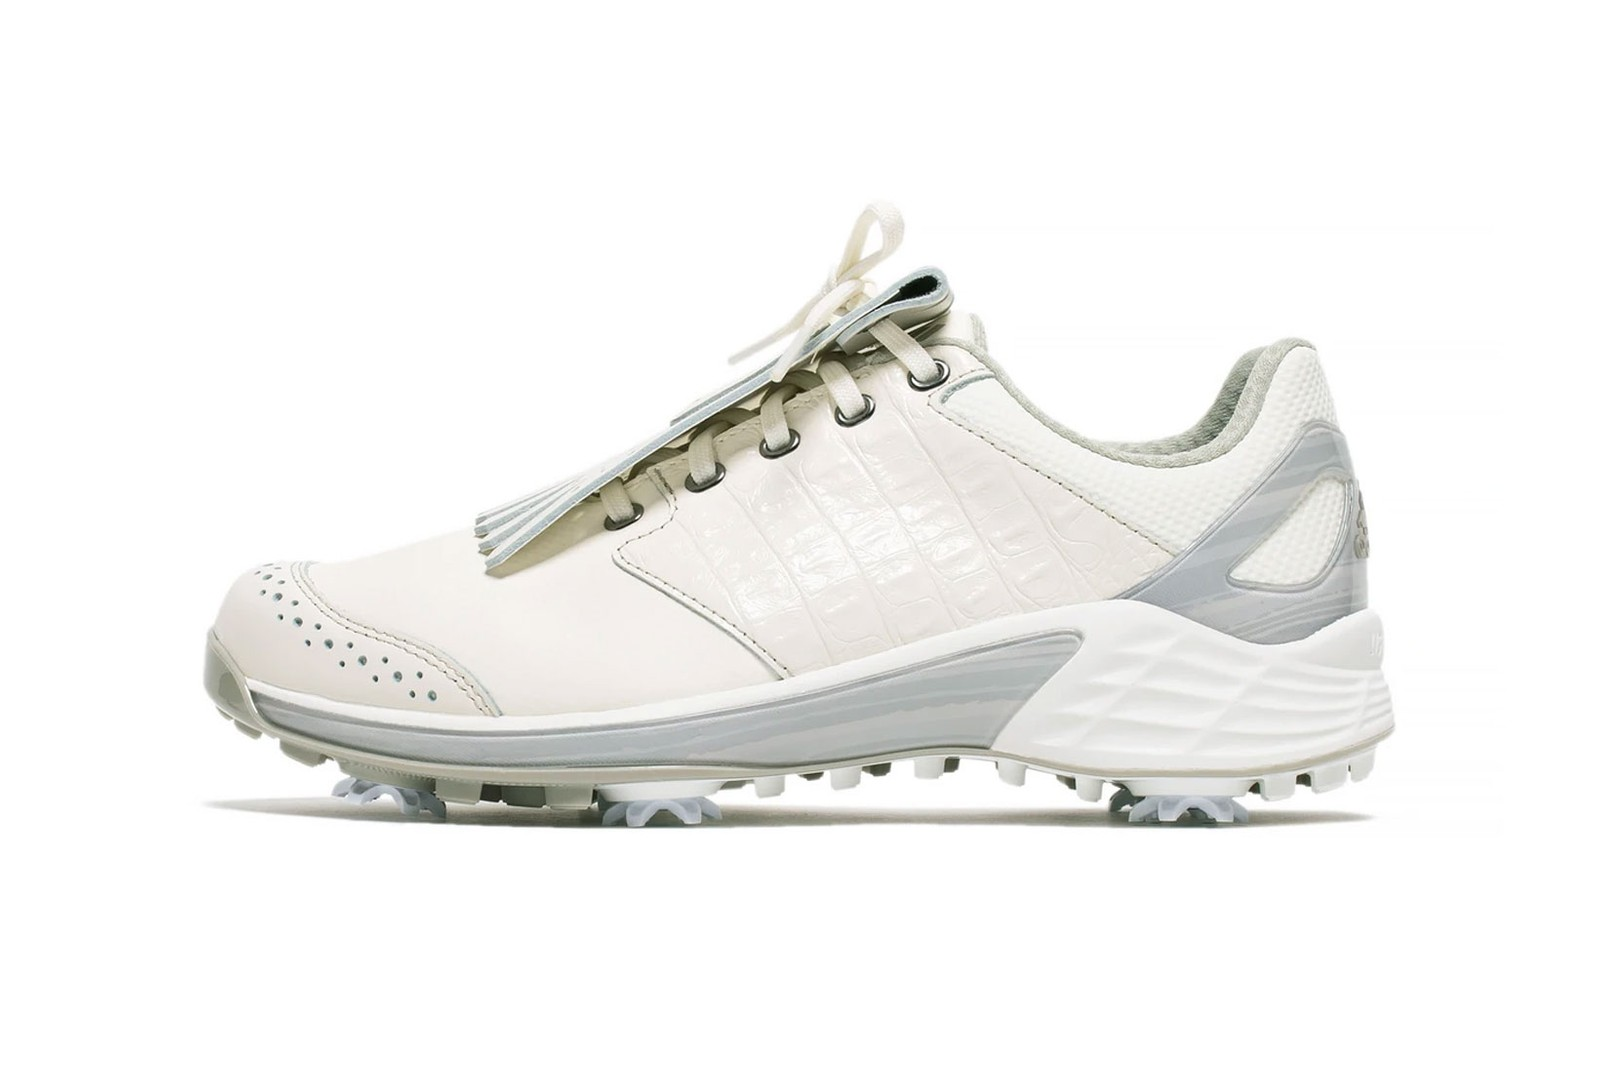 adidas extra butter golf shoes women spike white collaboration sneakers